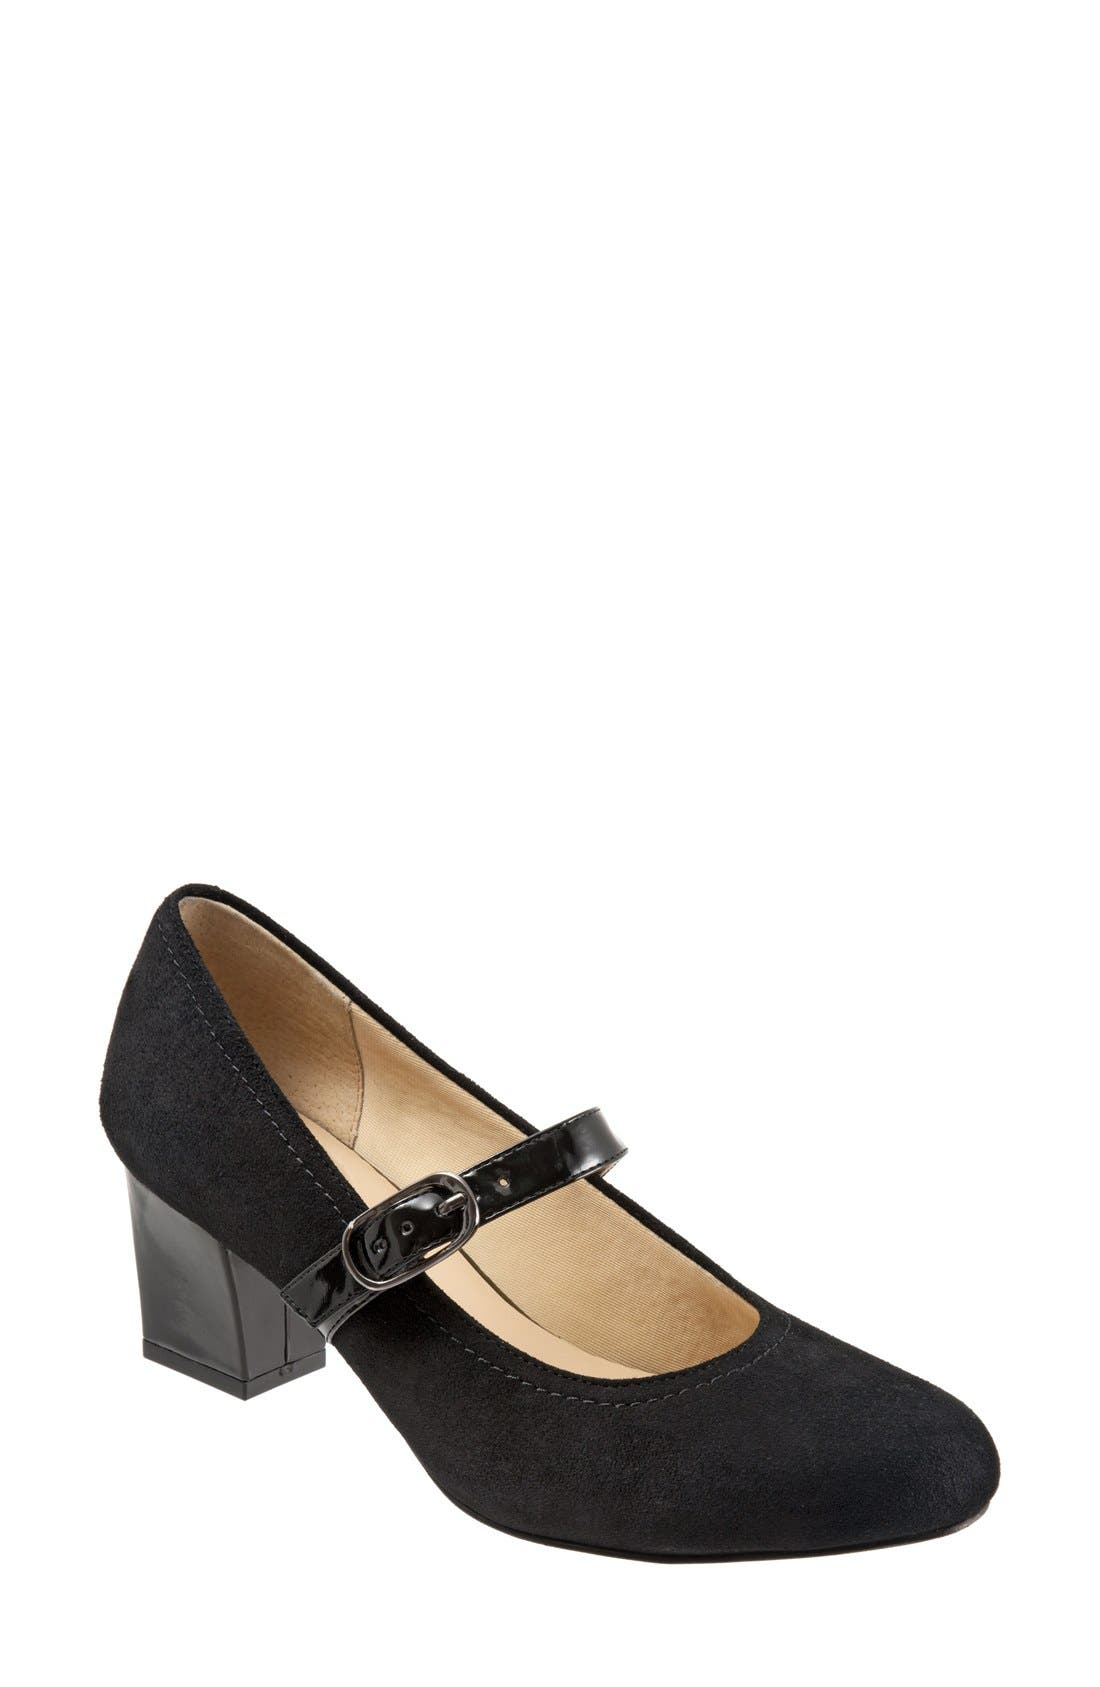 Main Image - Trotters 'Candice' Mary Jane Pump (Women)